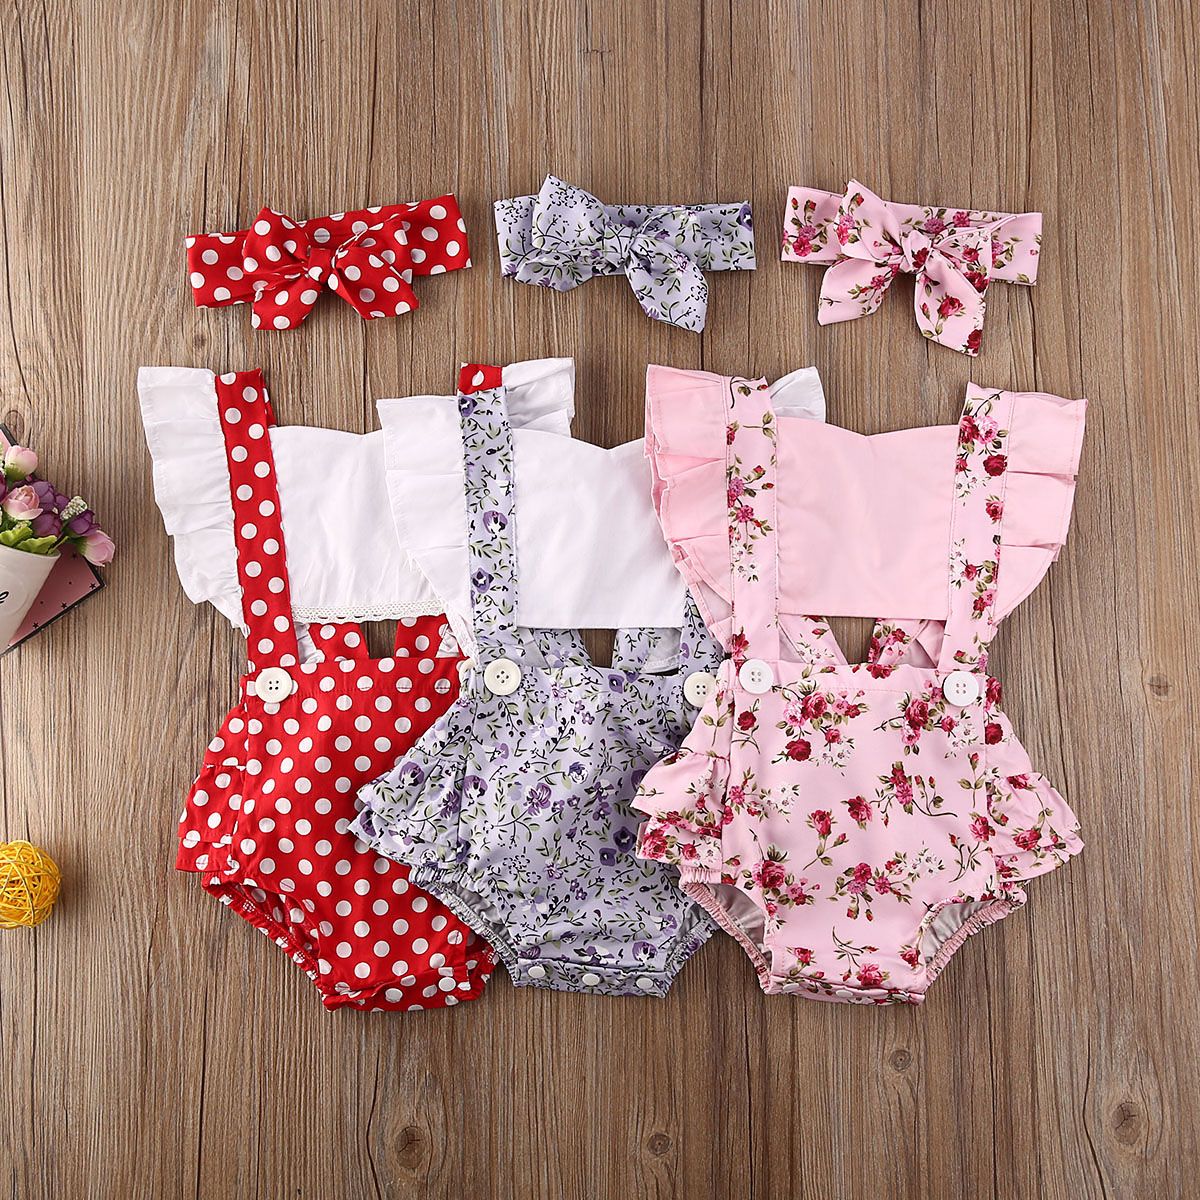 Goocheer 0-24M Newborn Baby Summer Clothing Infant Baby Girl Romper Ruffled Hollow Out Jumpsuits Sle